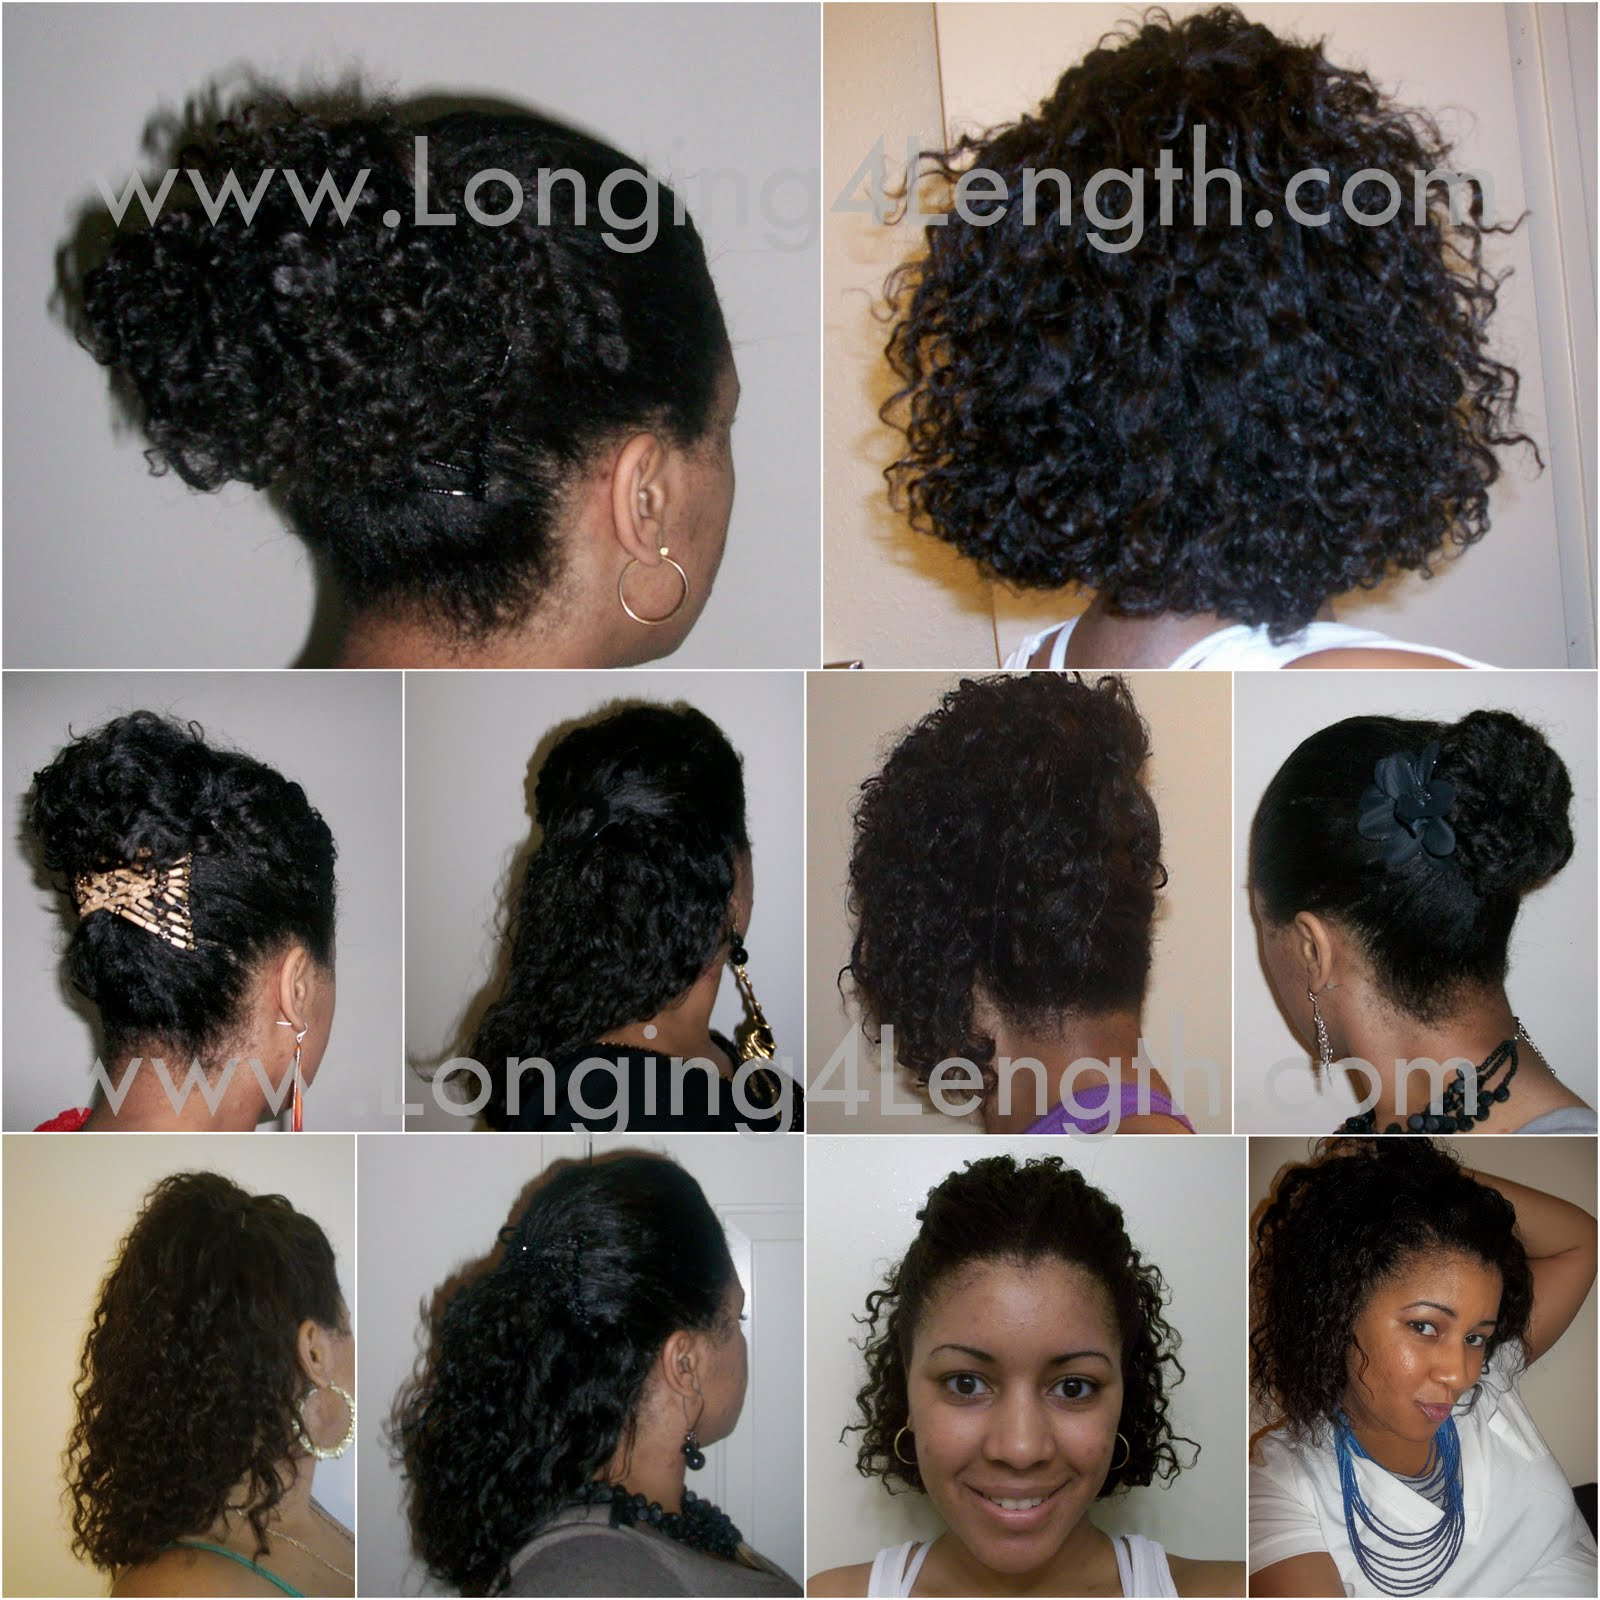 How To Save A Busted Braidout Longing 4 Length